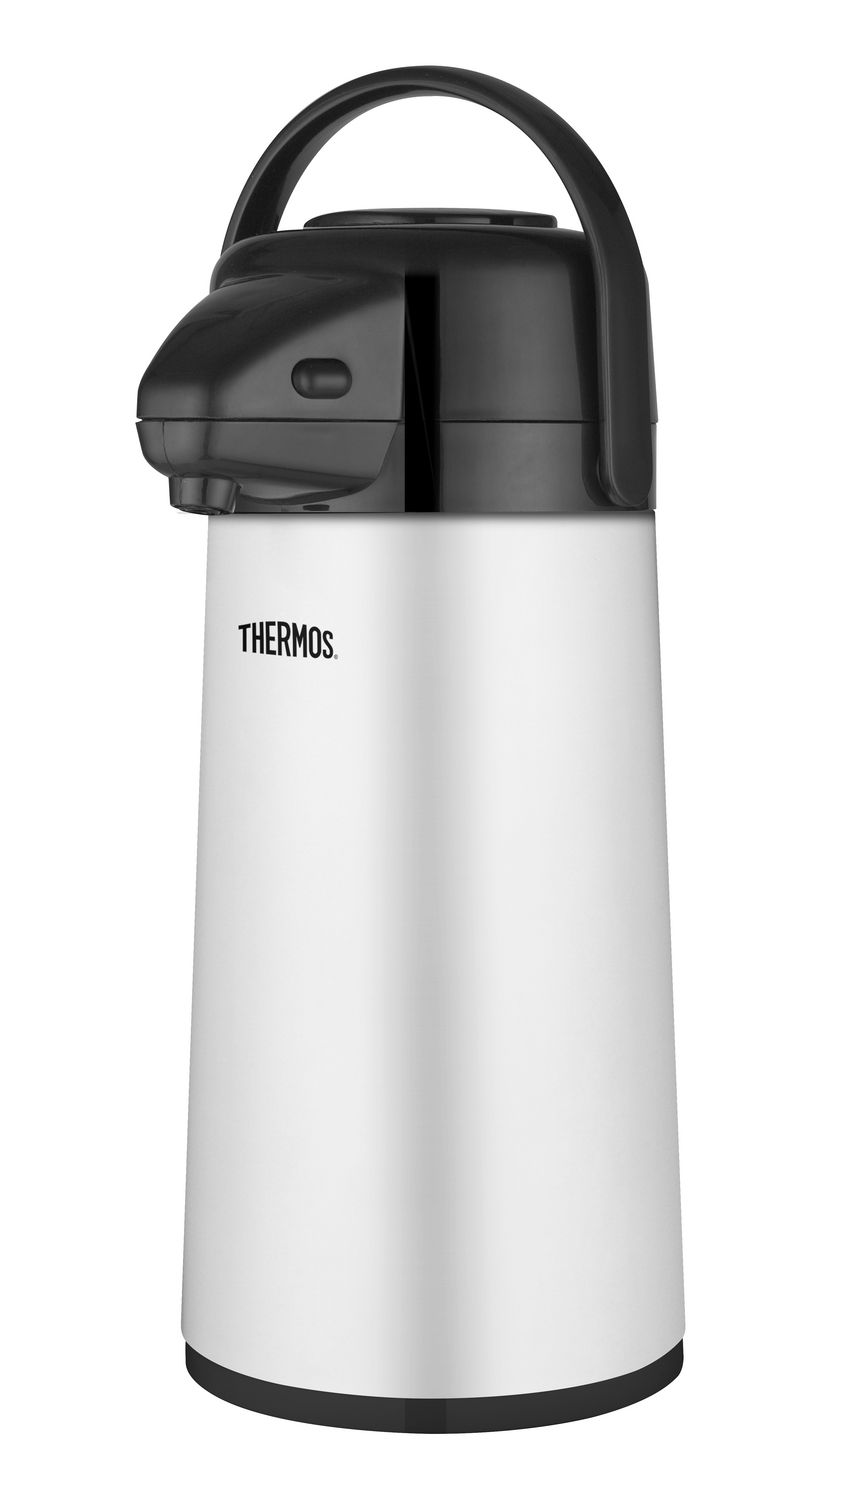 genuine thermos brand glass vacuum insulated pump pot 1 9 l